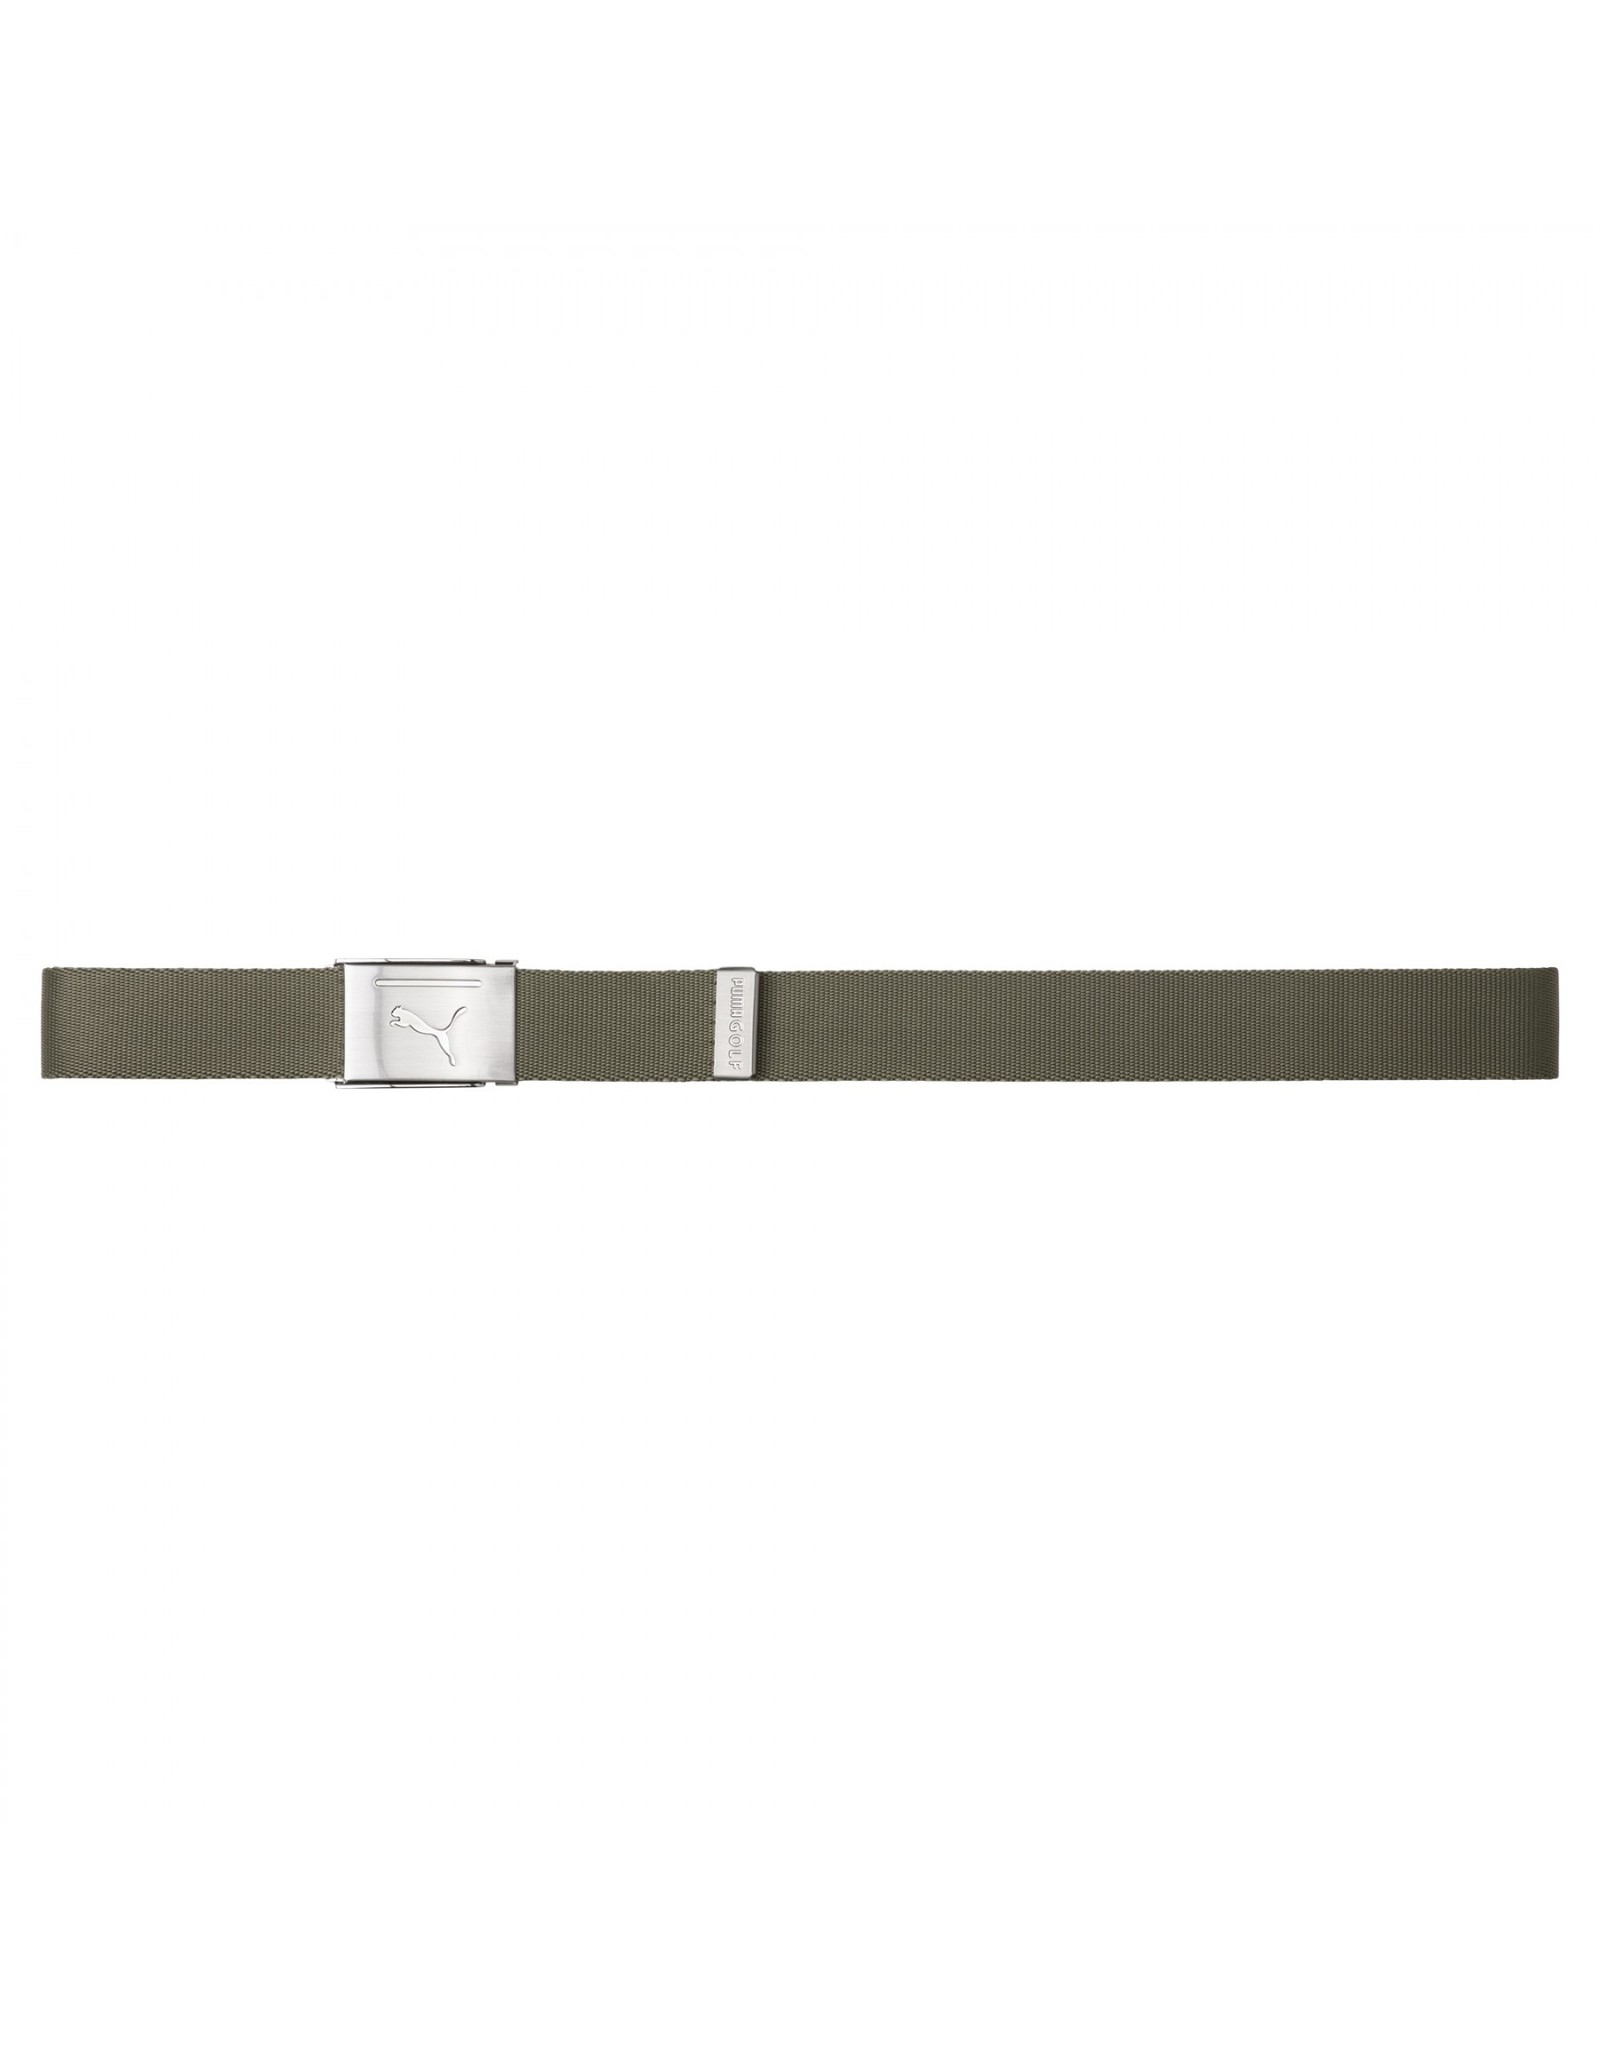 Puma Golf Puma Men's Reversible Web Belt